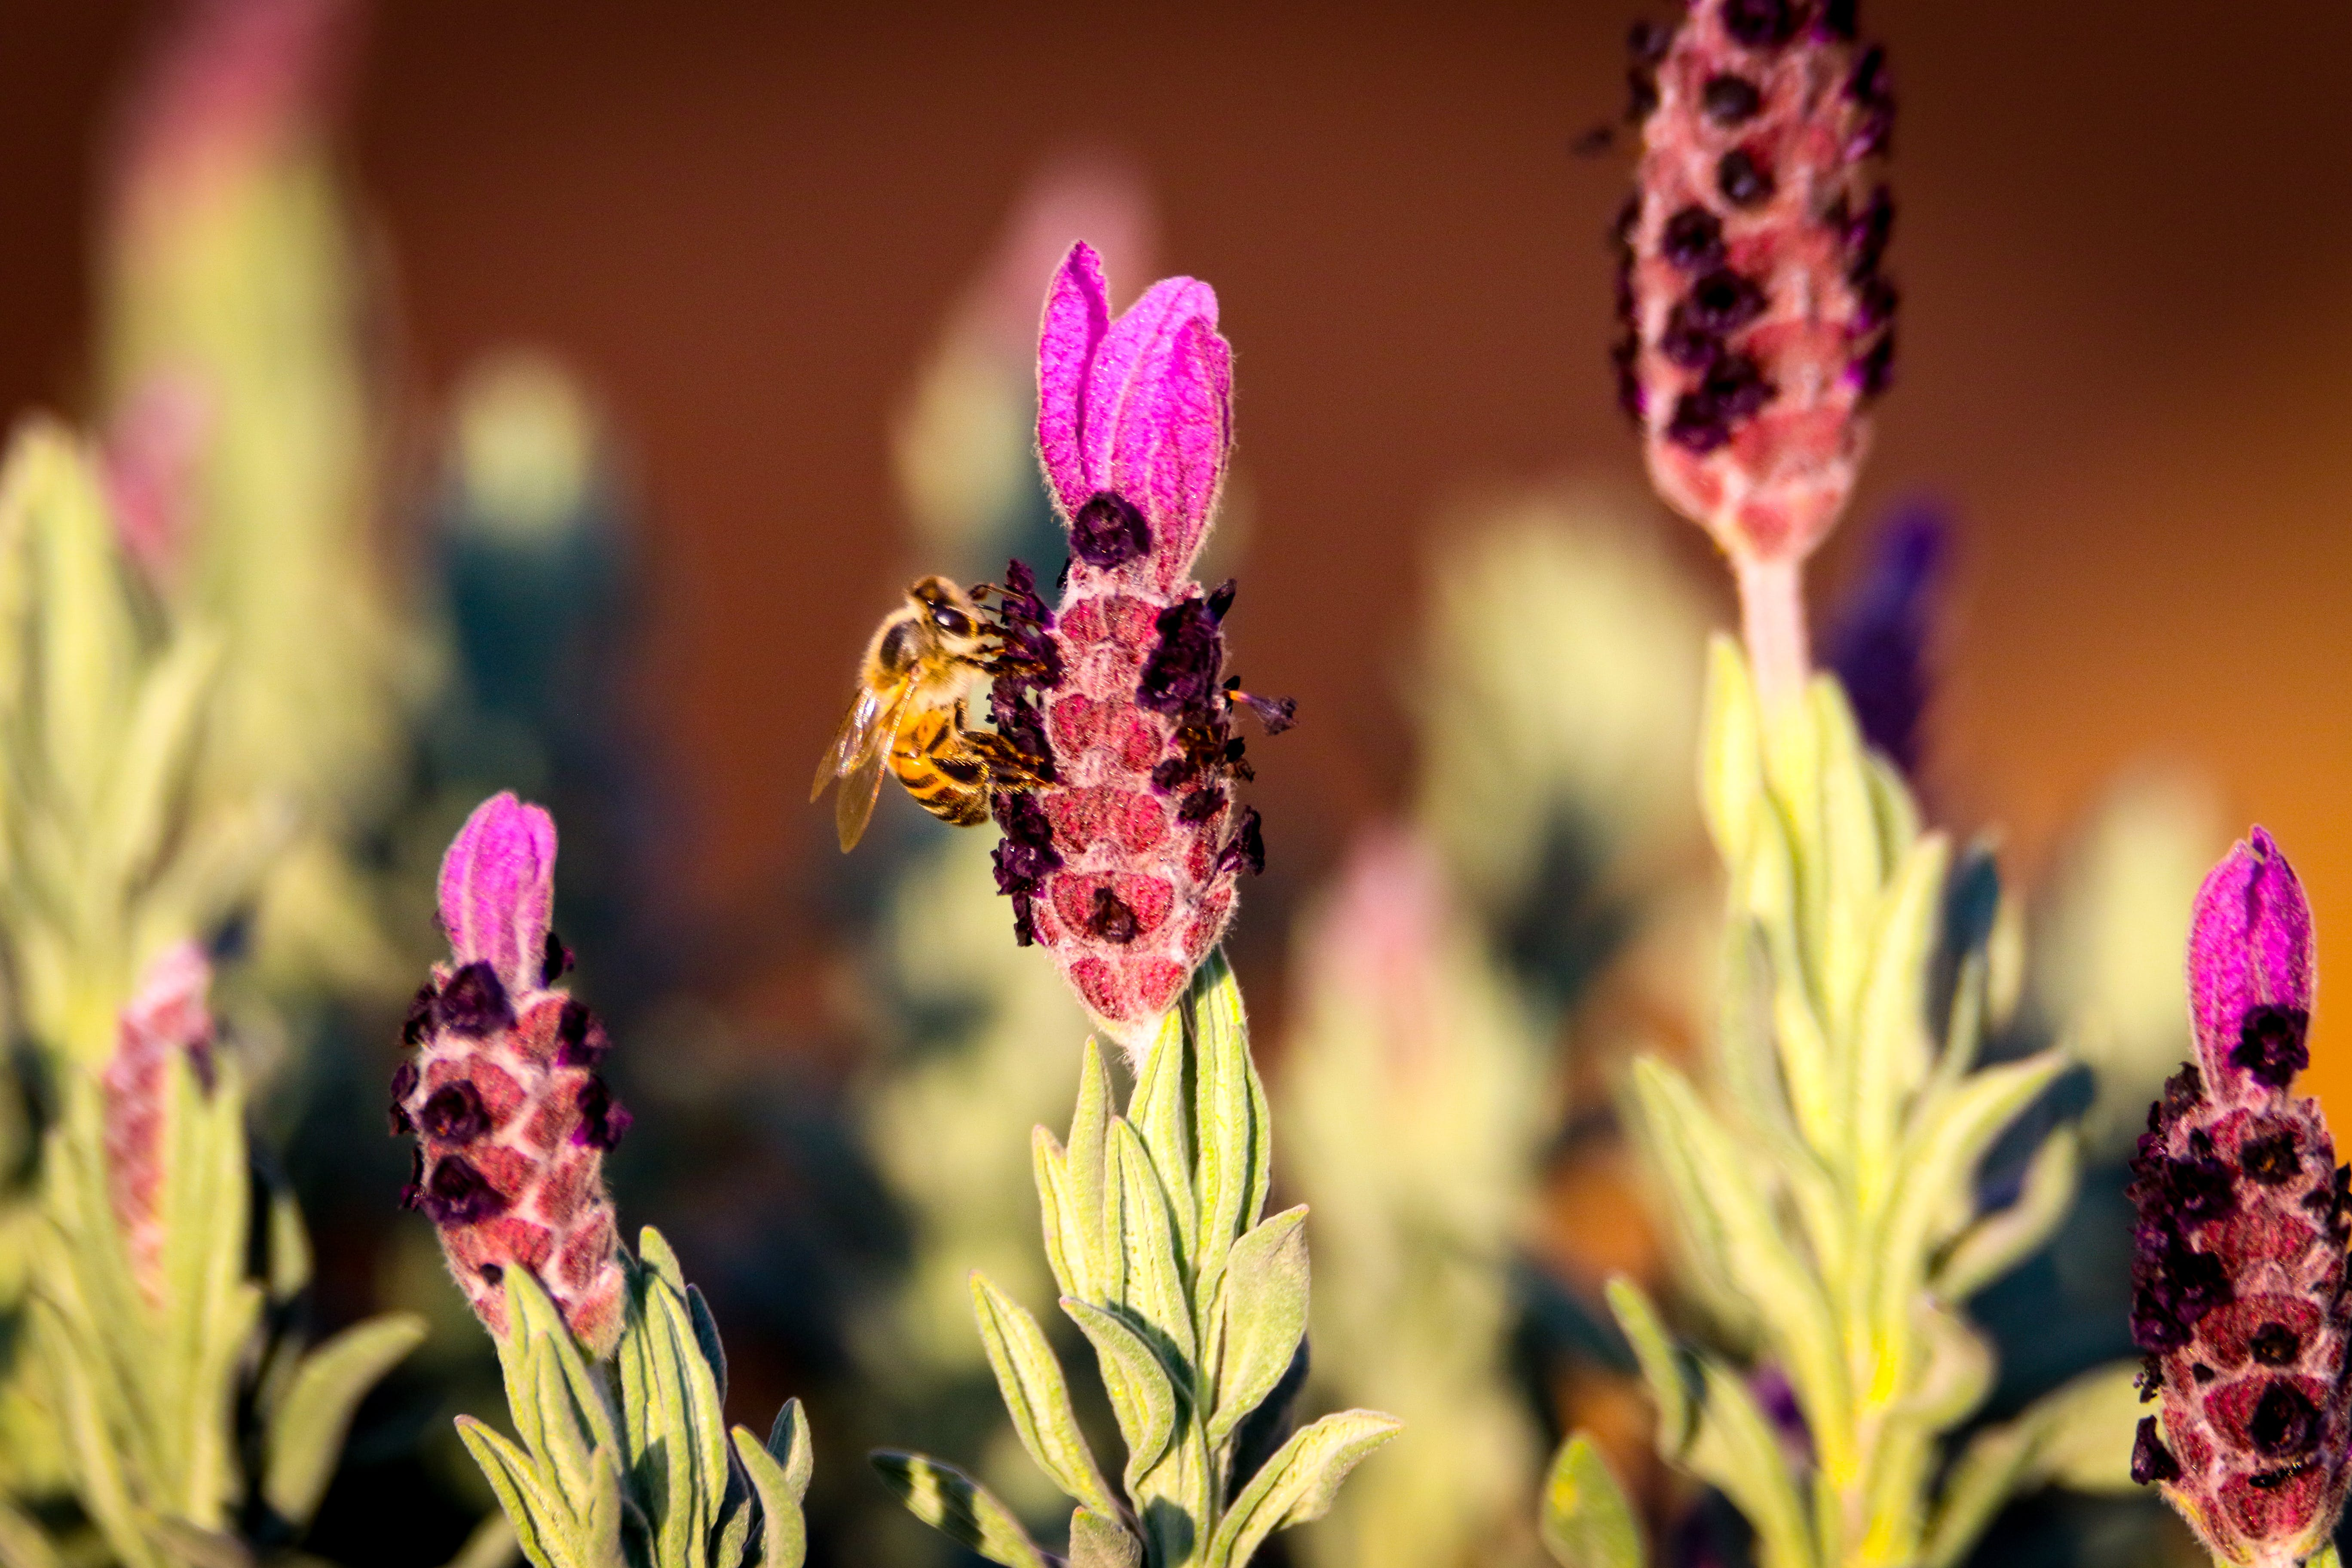 Free stock photo of nature, flowers, bee, fly